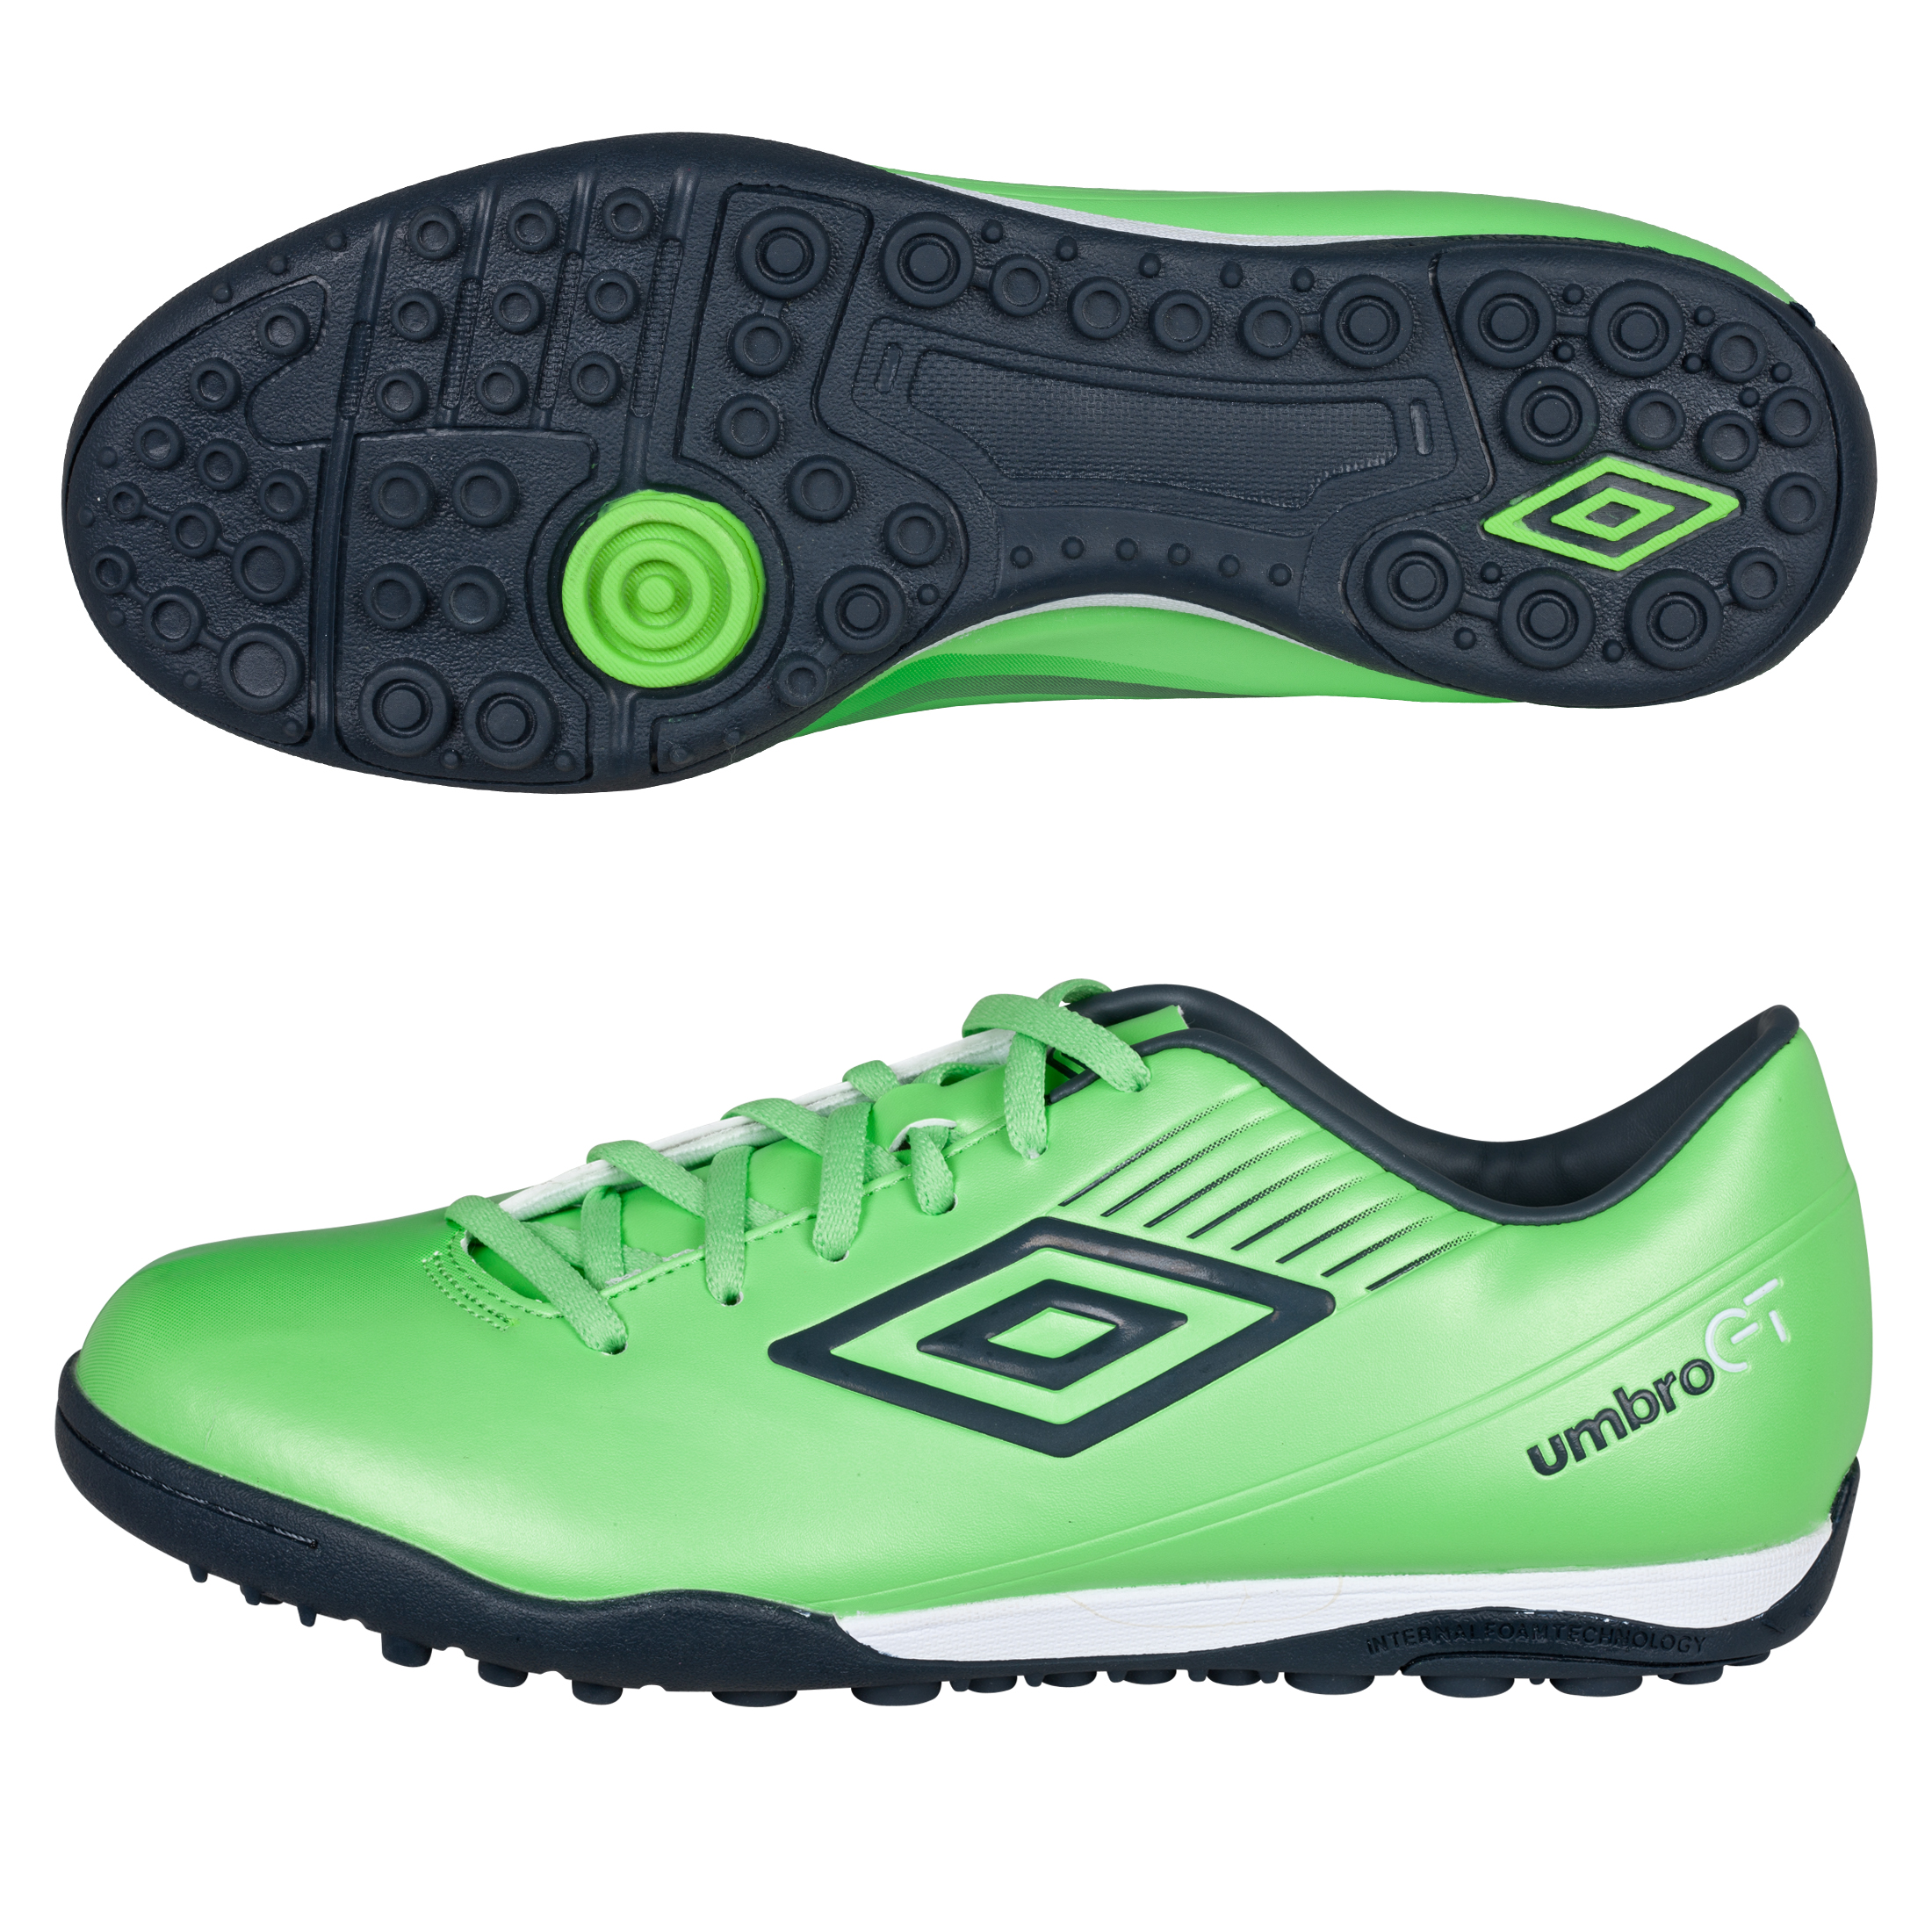 Umbro GT ll Cup Astroturf Trainers - Summer Green/Carbon/White